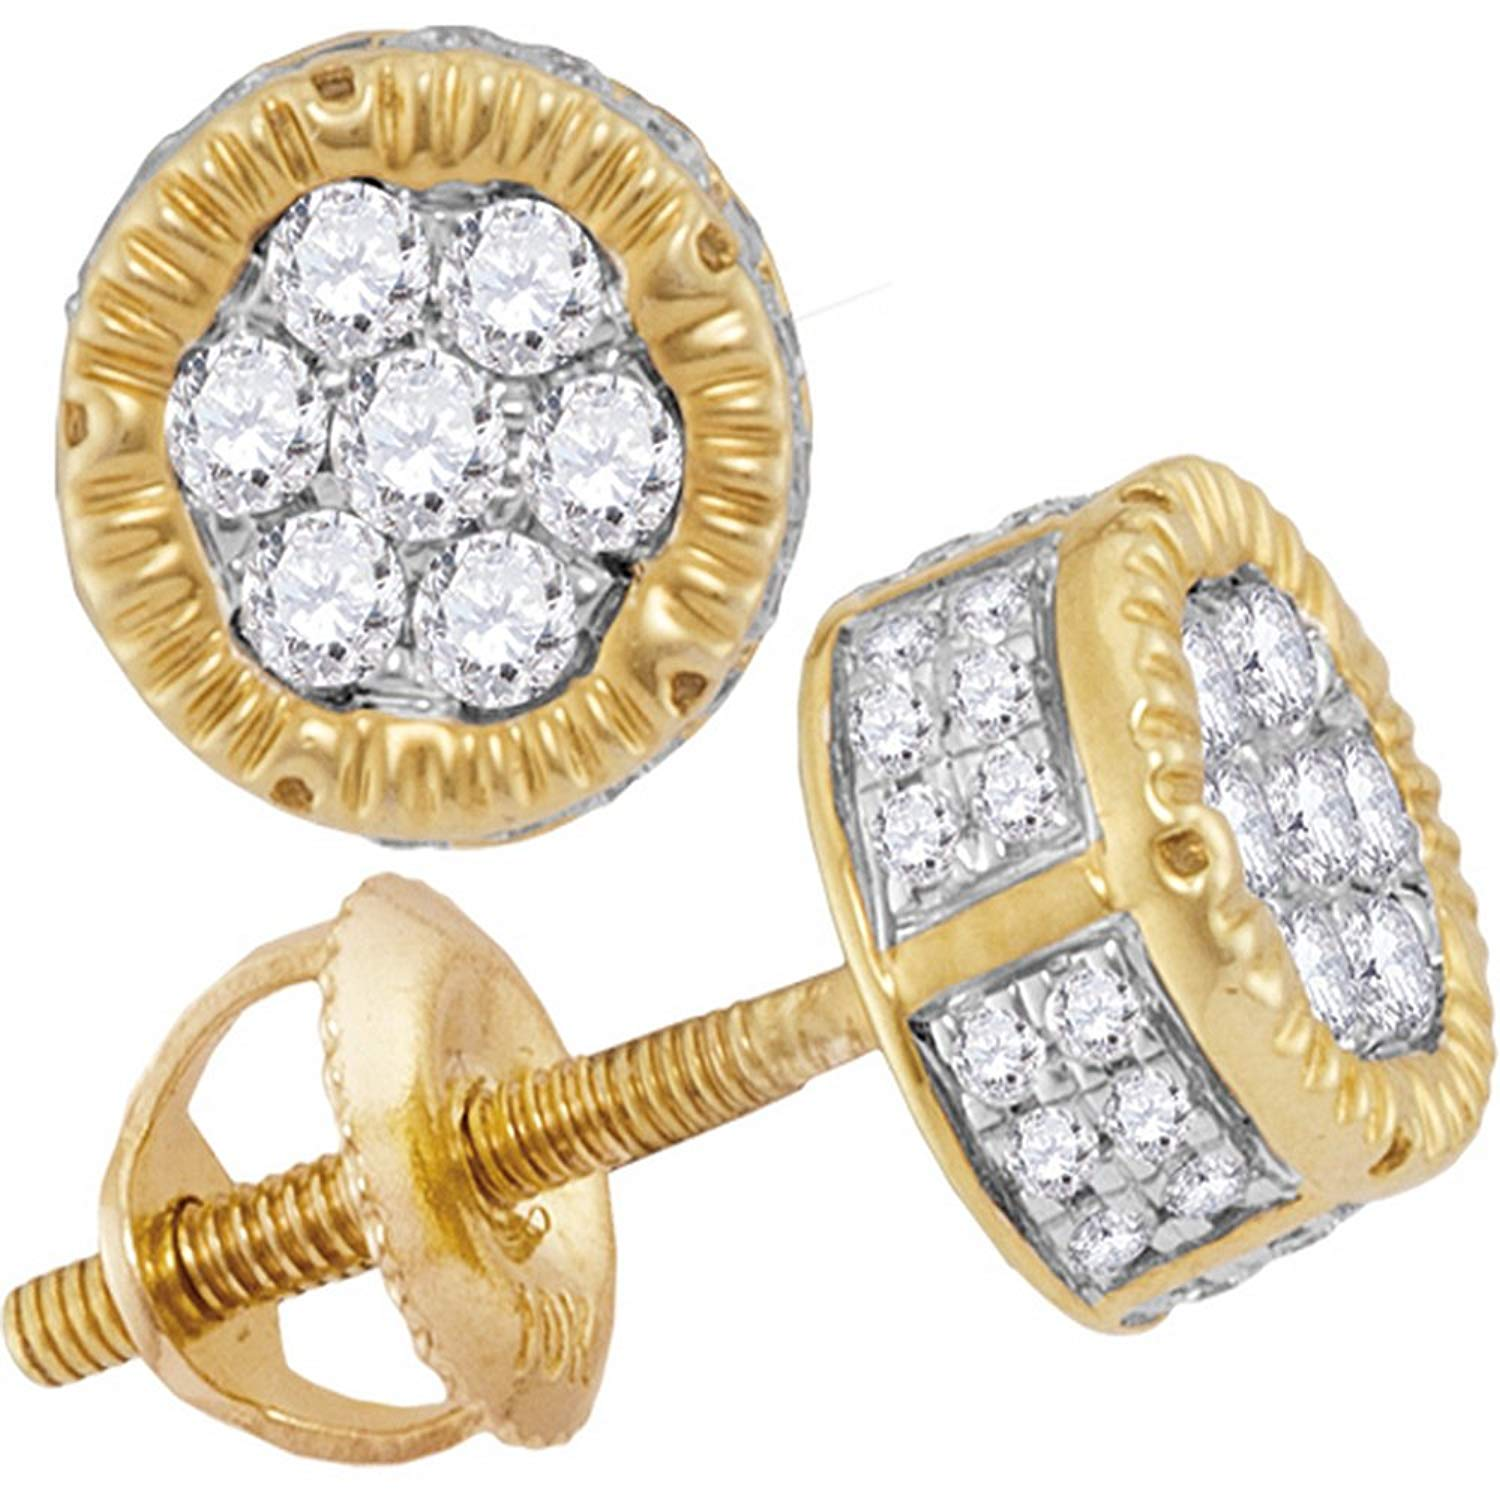 Earrings, Studs Mens Ladies 18k Gold Filled 0.15 Ctw Lab Diamond Screw Back Stud Earrings 8mm